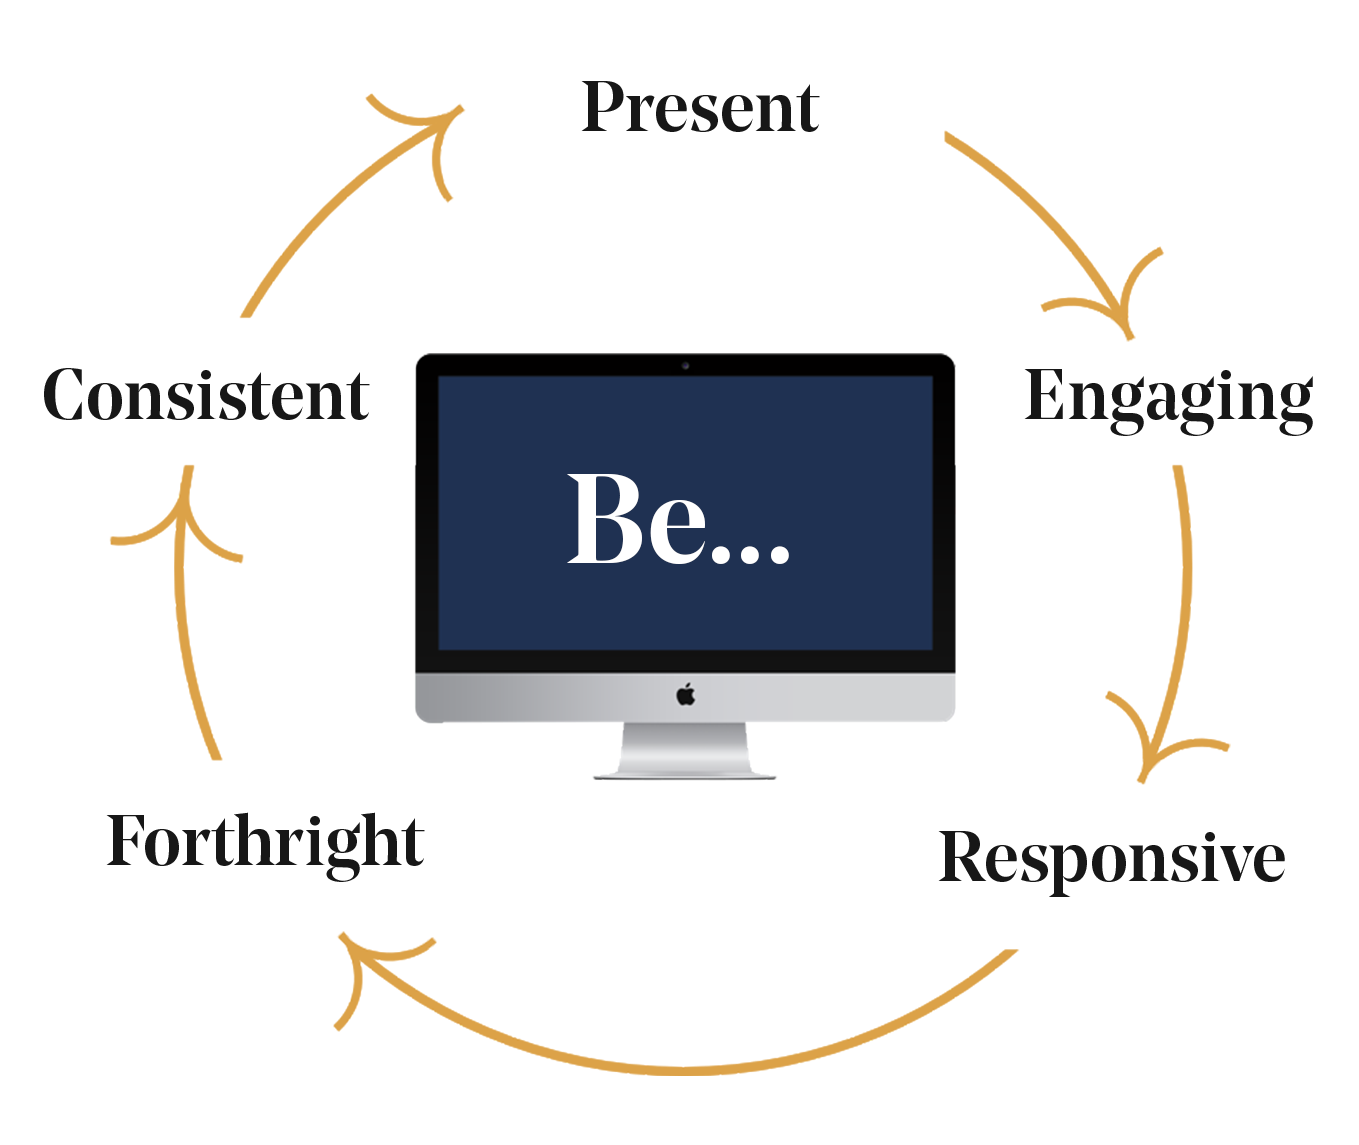 A circle that is outlined with curved dark, yellow arrow that point to five words spread evenly around the circle. Those words, starting from the top, are present, engaging, responsive, forthright, and consistent. In the middle of the circle is a Mac desktop with the word Be...